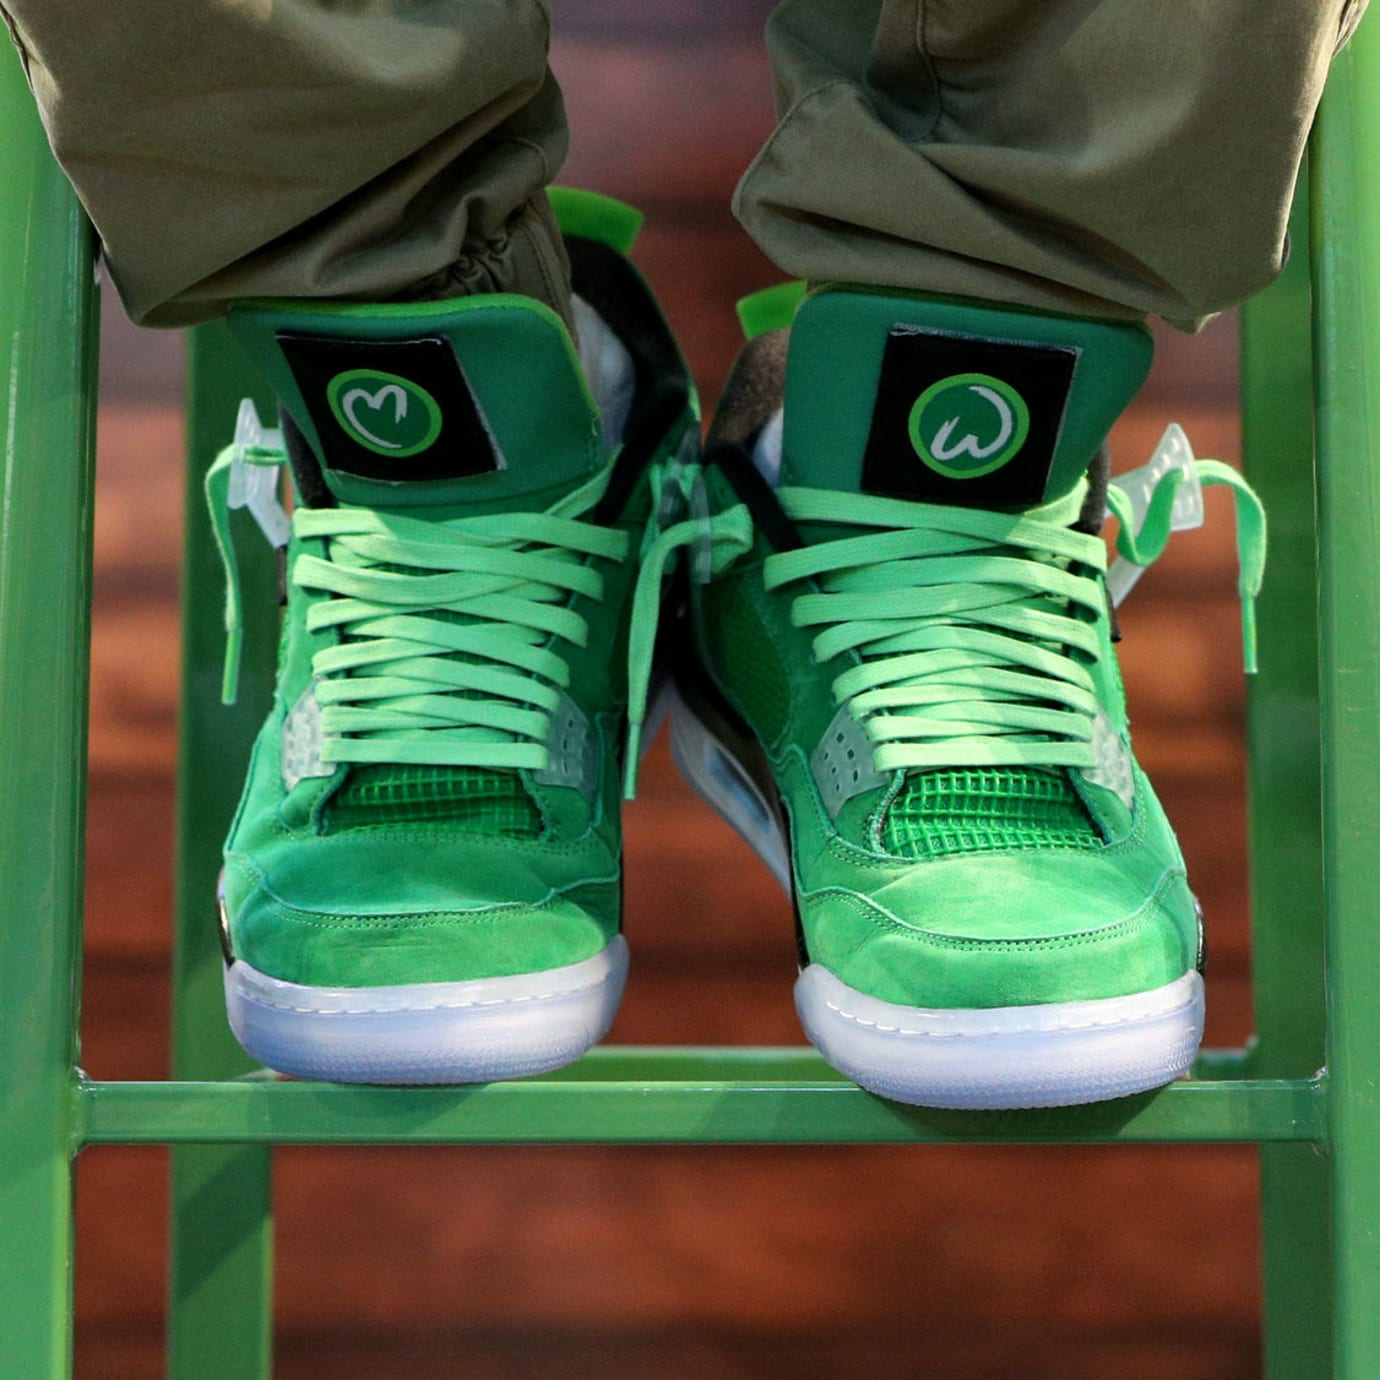 Mark Wahlberg Wahlburgers Air Jordan 4 Green On-Foot